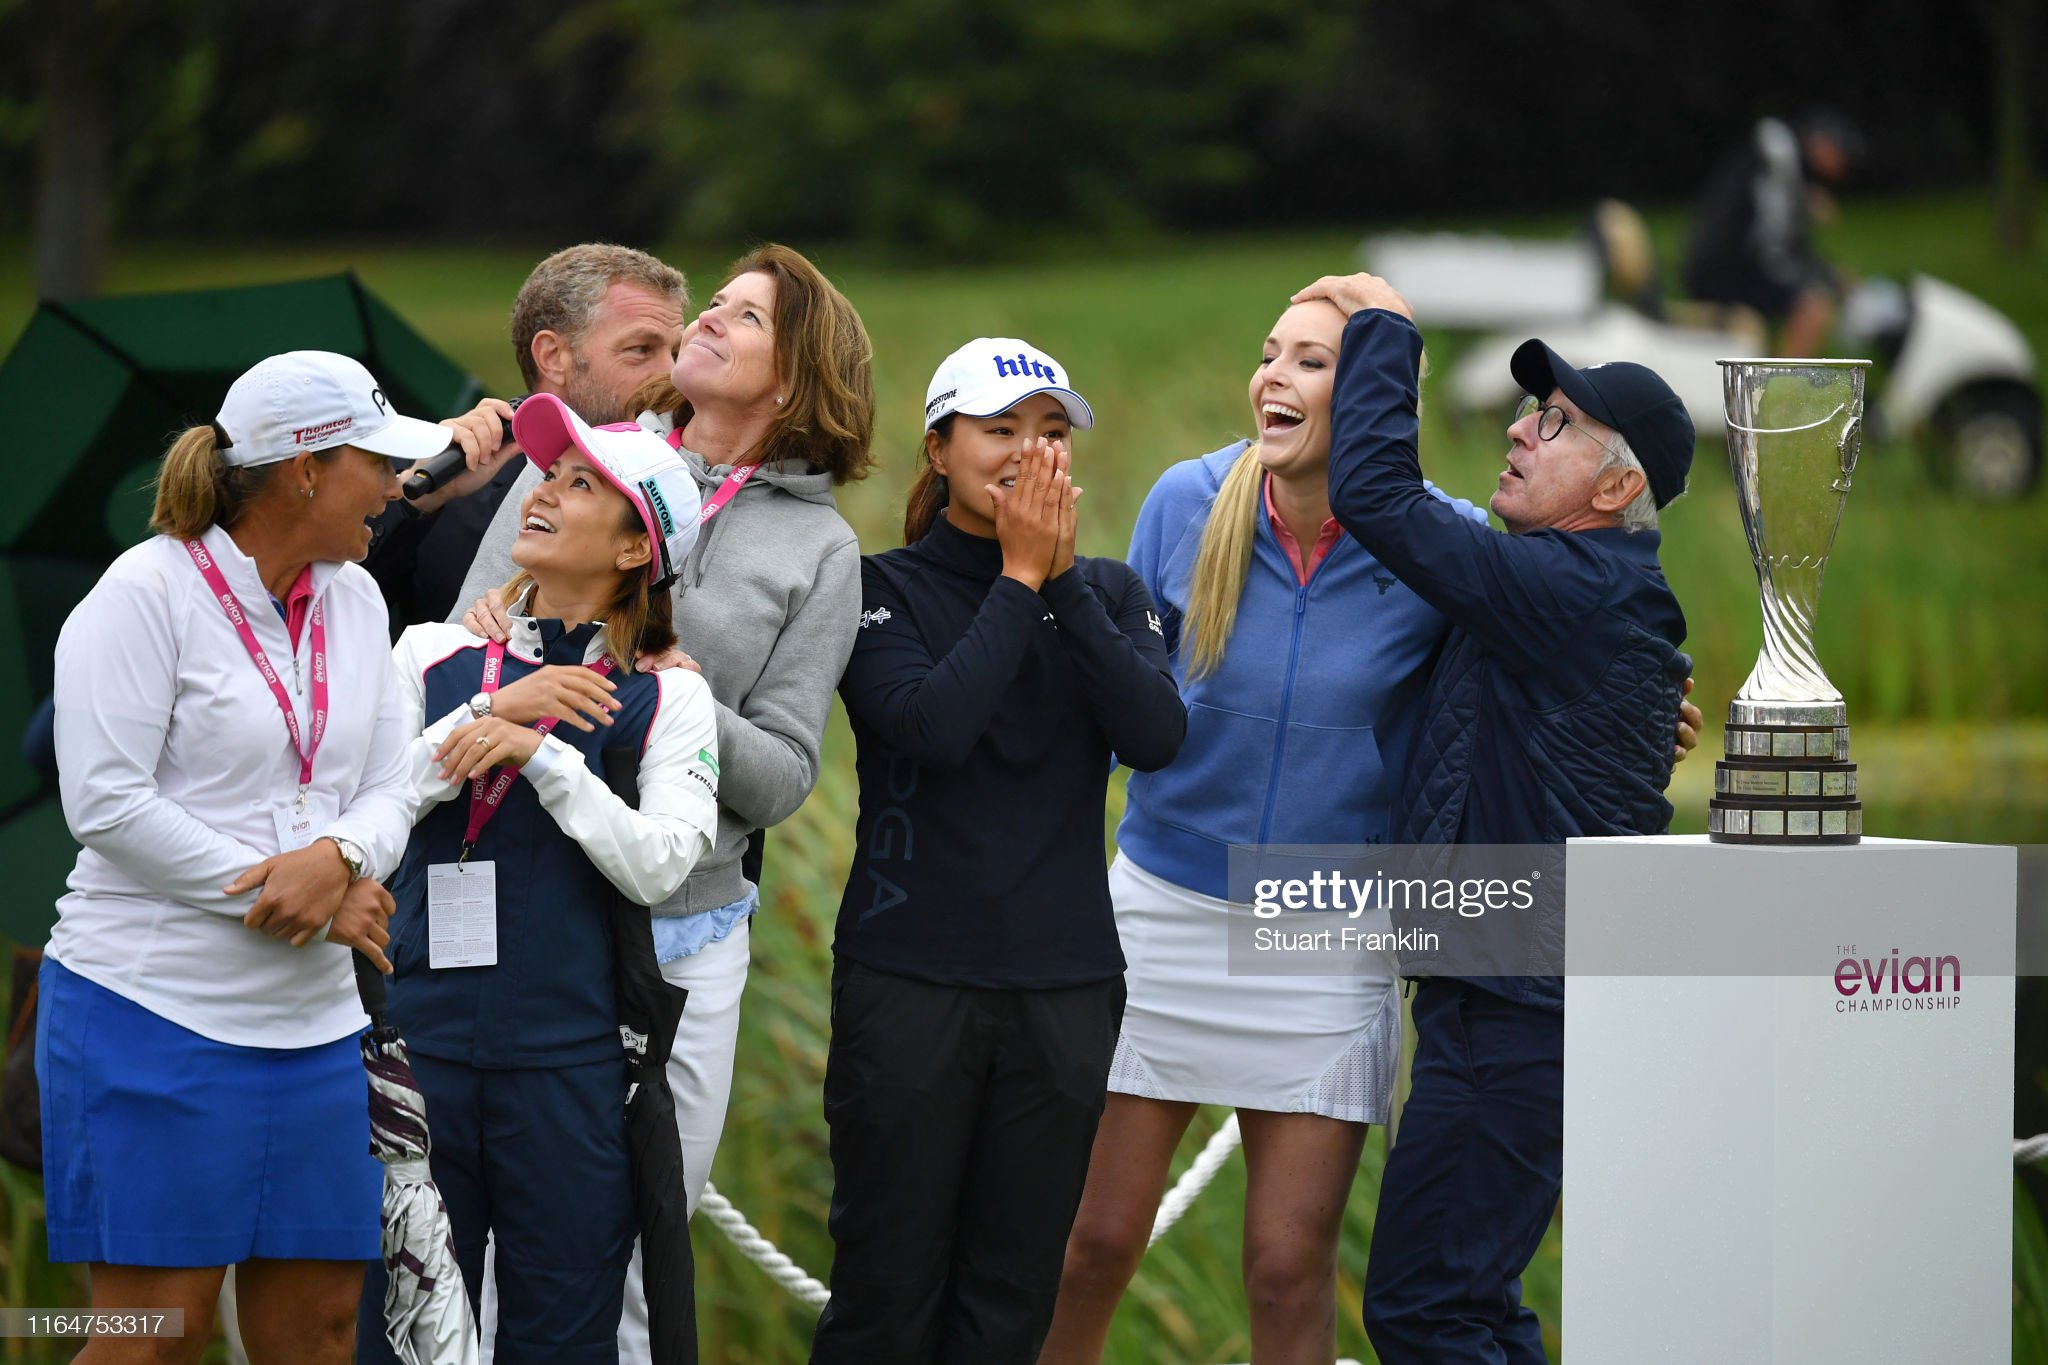 https://media.gettyimages.com/photos/jin-young-ko-of-south-korea-stands-next-to-the-trophy-with-franck-picture-id1164753317?s=2048x2048